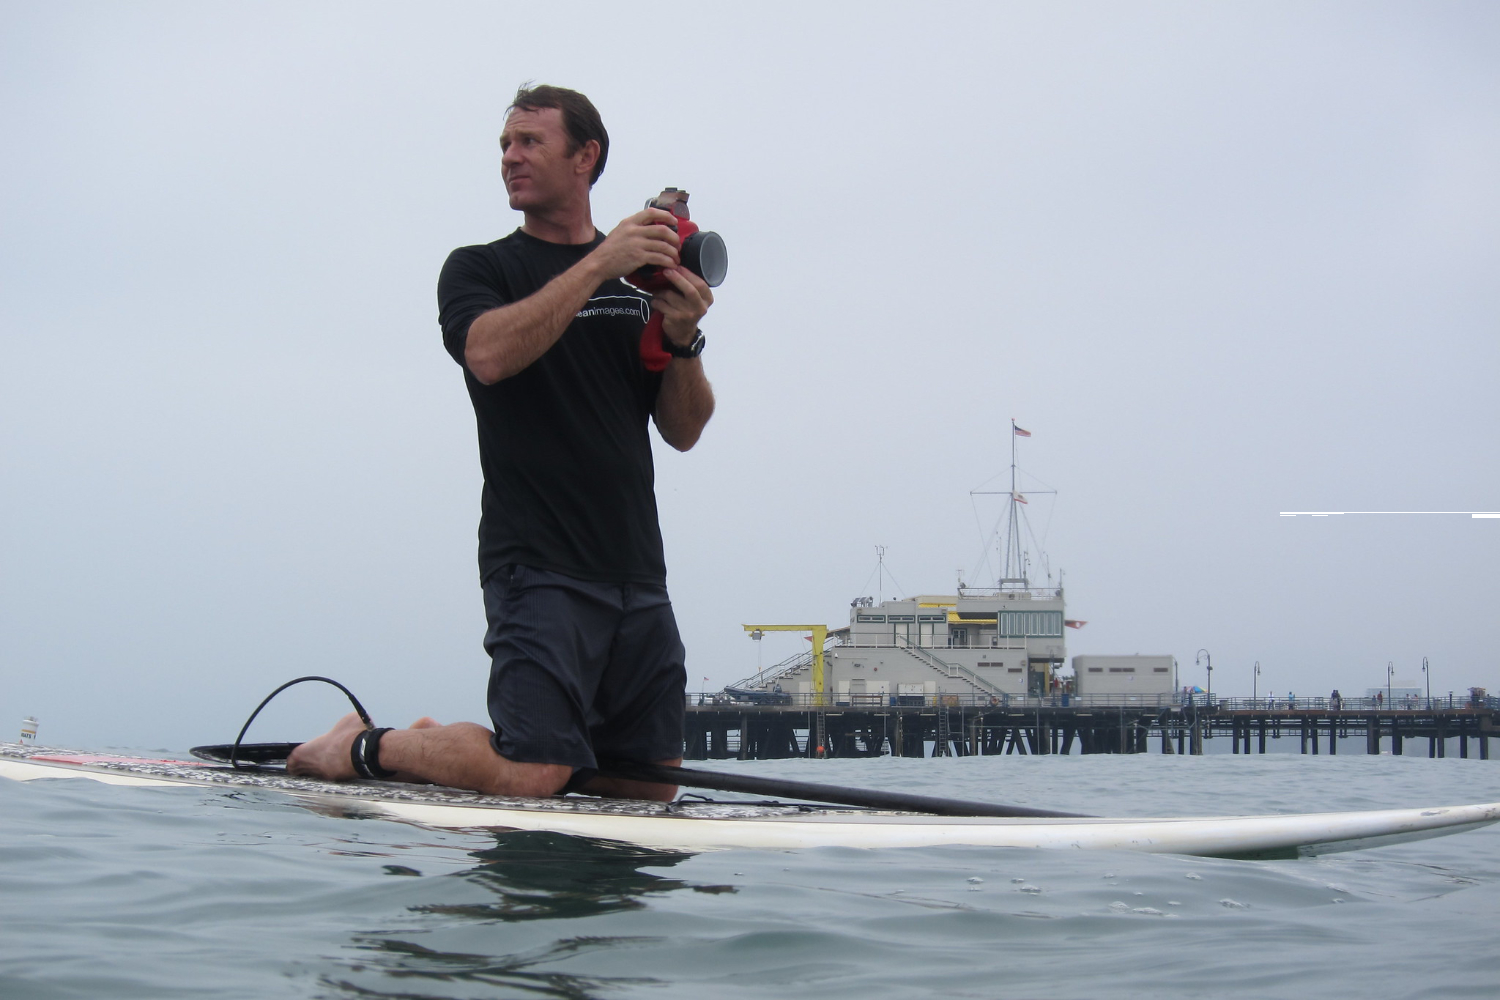 taking picture from stand up paddleboard